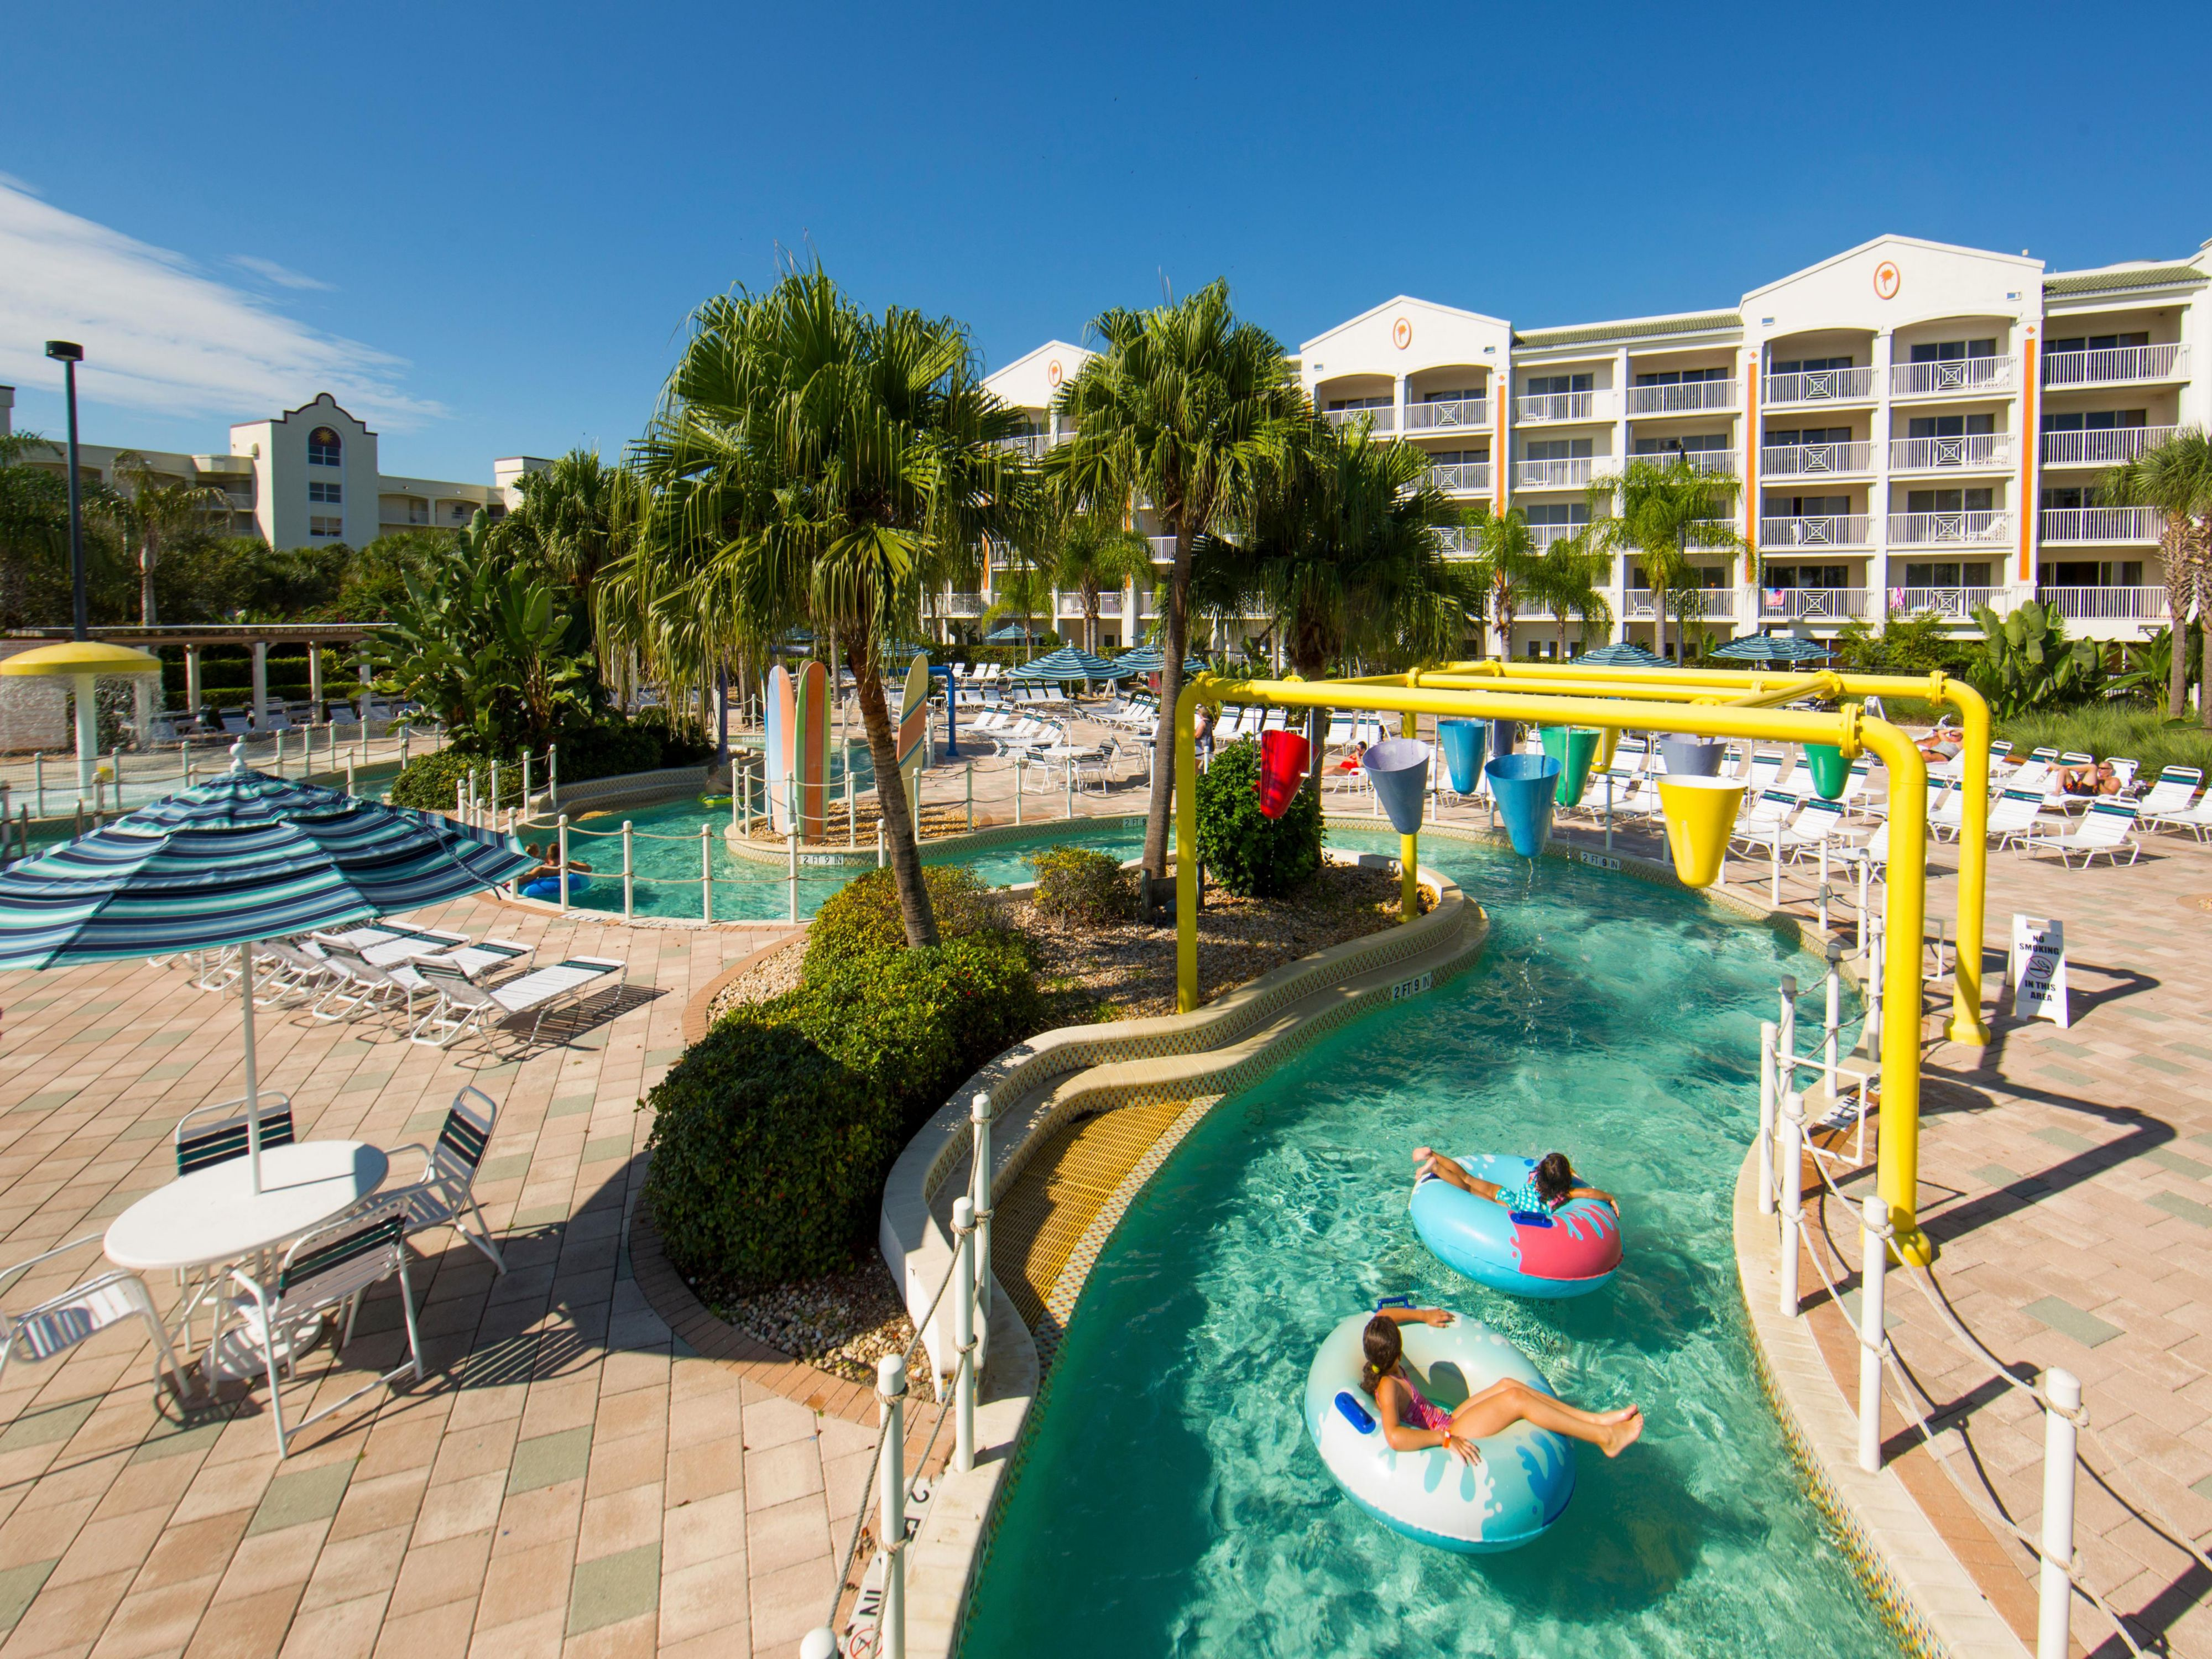 Float your way down the lazy river and relax in the warm sun